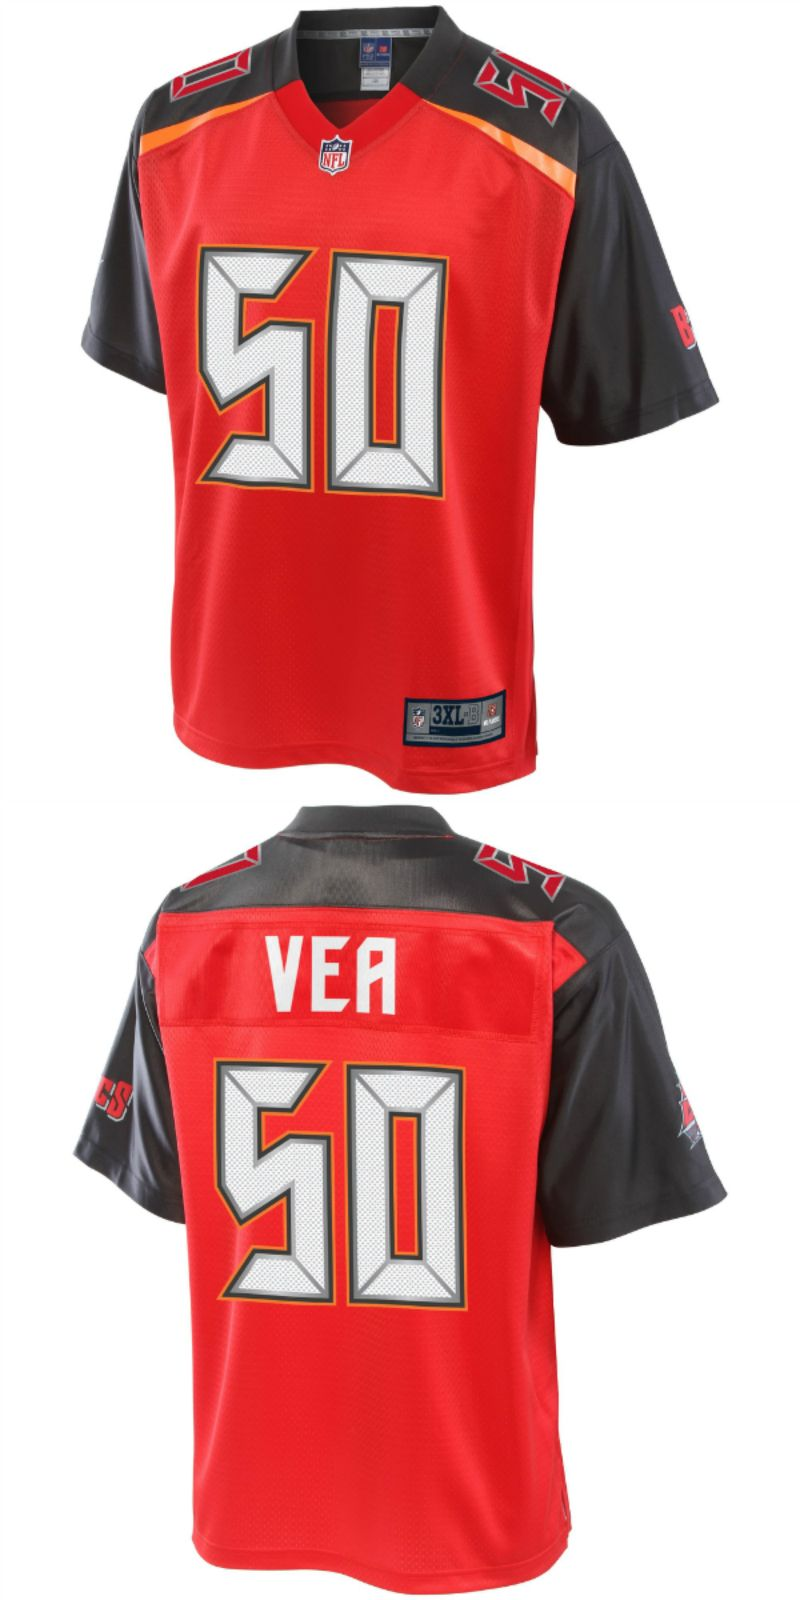 on sale 8fcfd ce194 UP TO 70% OFF. Vita Vea Tampa Bay Buccaneers NFL Pro Line ...